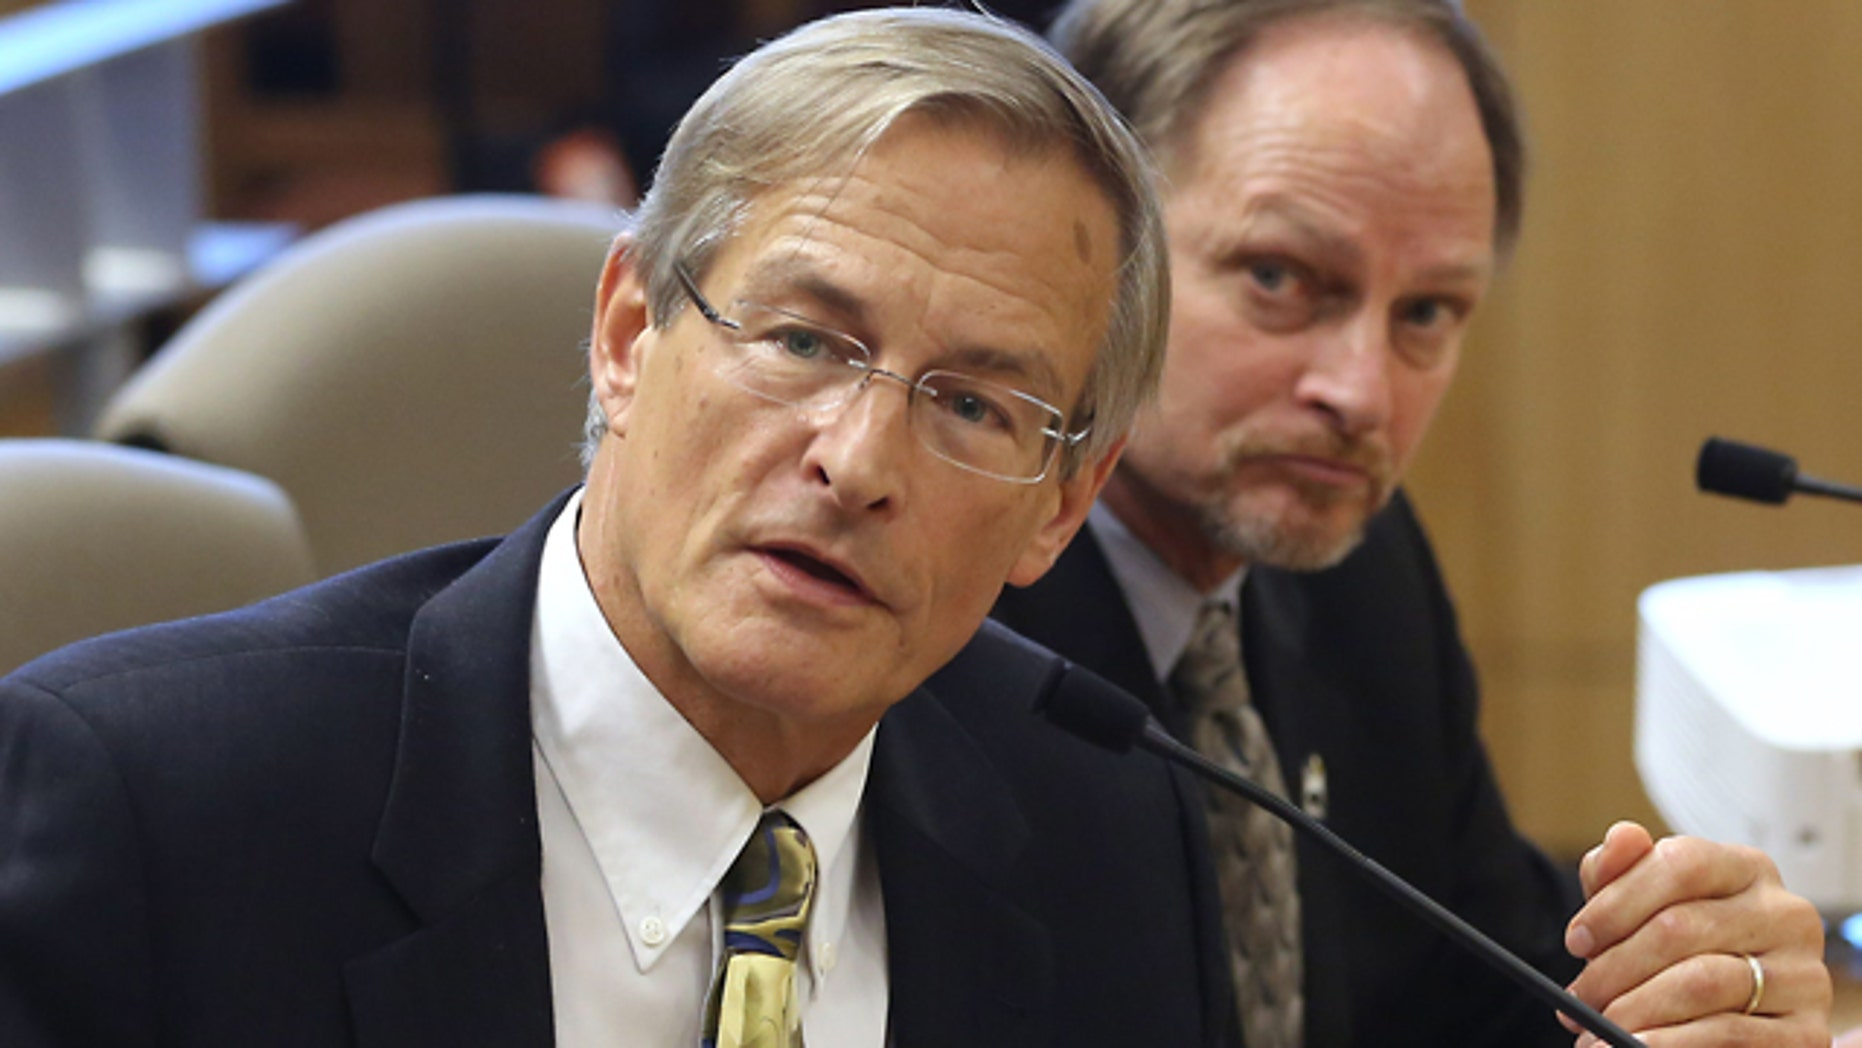 FILE - In this March 10, 2015, file photo, Steven Bohlen, left, then Gas Supervisor for the Conservation Departments Division of Oil, Gas and Geothermal Resources answers a question during a joint hearing of the Senate Natural Resources and Water and Environmental Quality Committees at the Capitol in Sacramento, Calif. (AP Photo/Rich Pedroncelli, File)